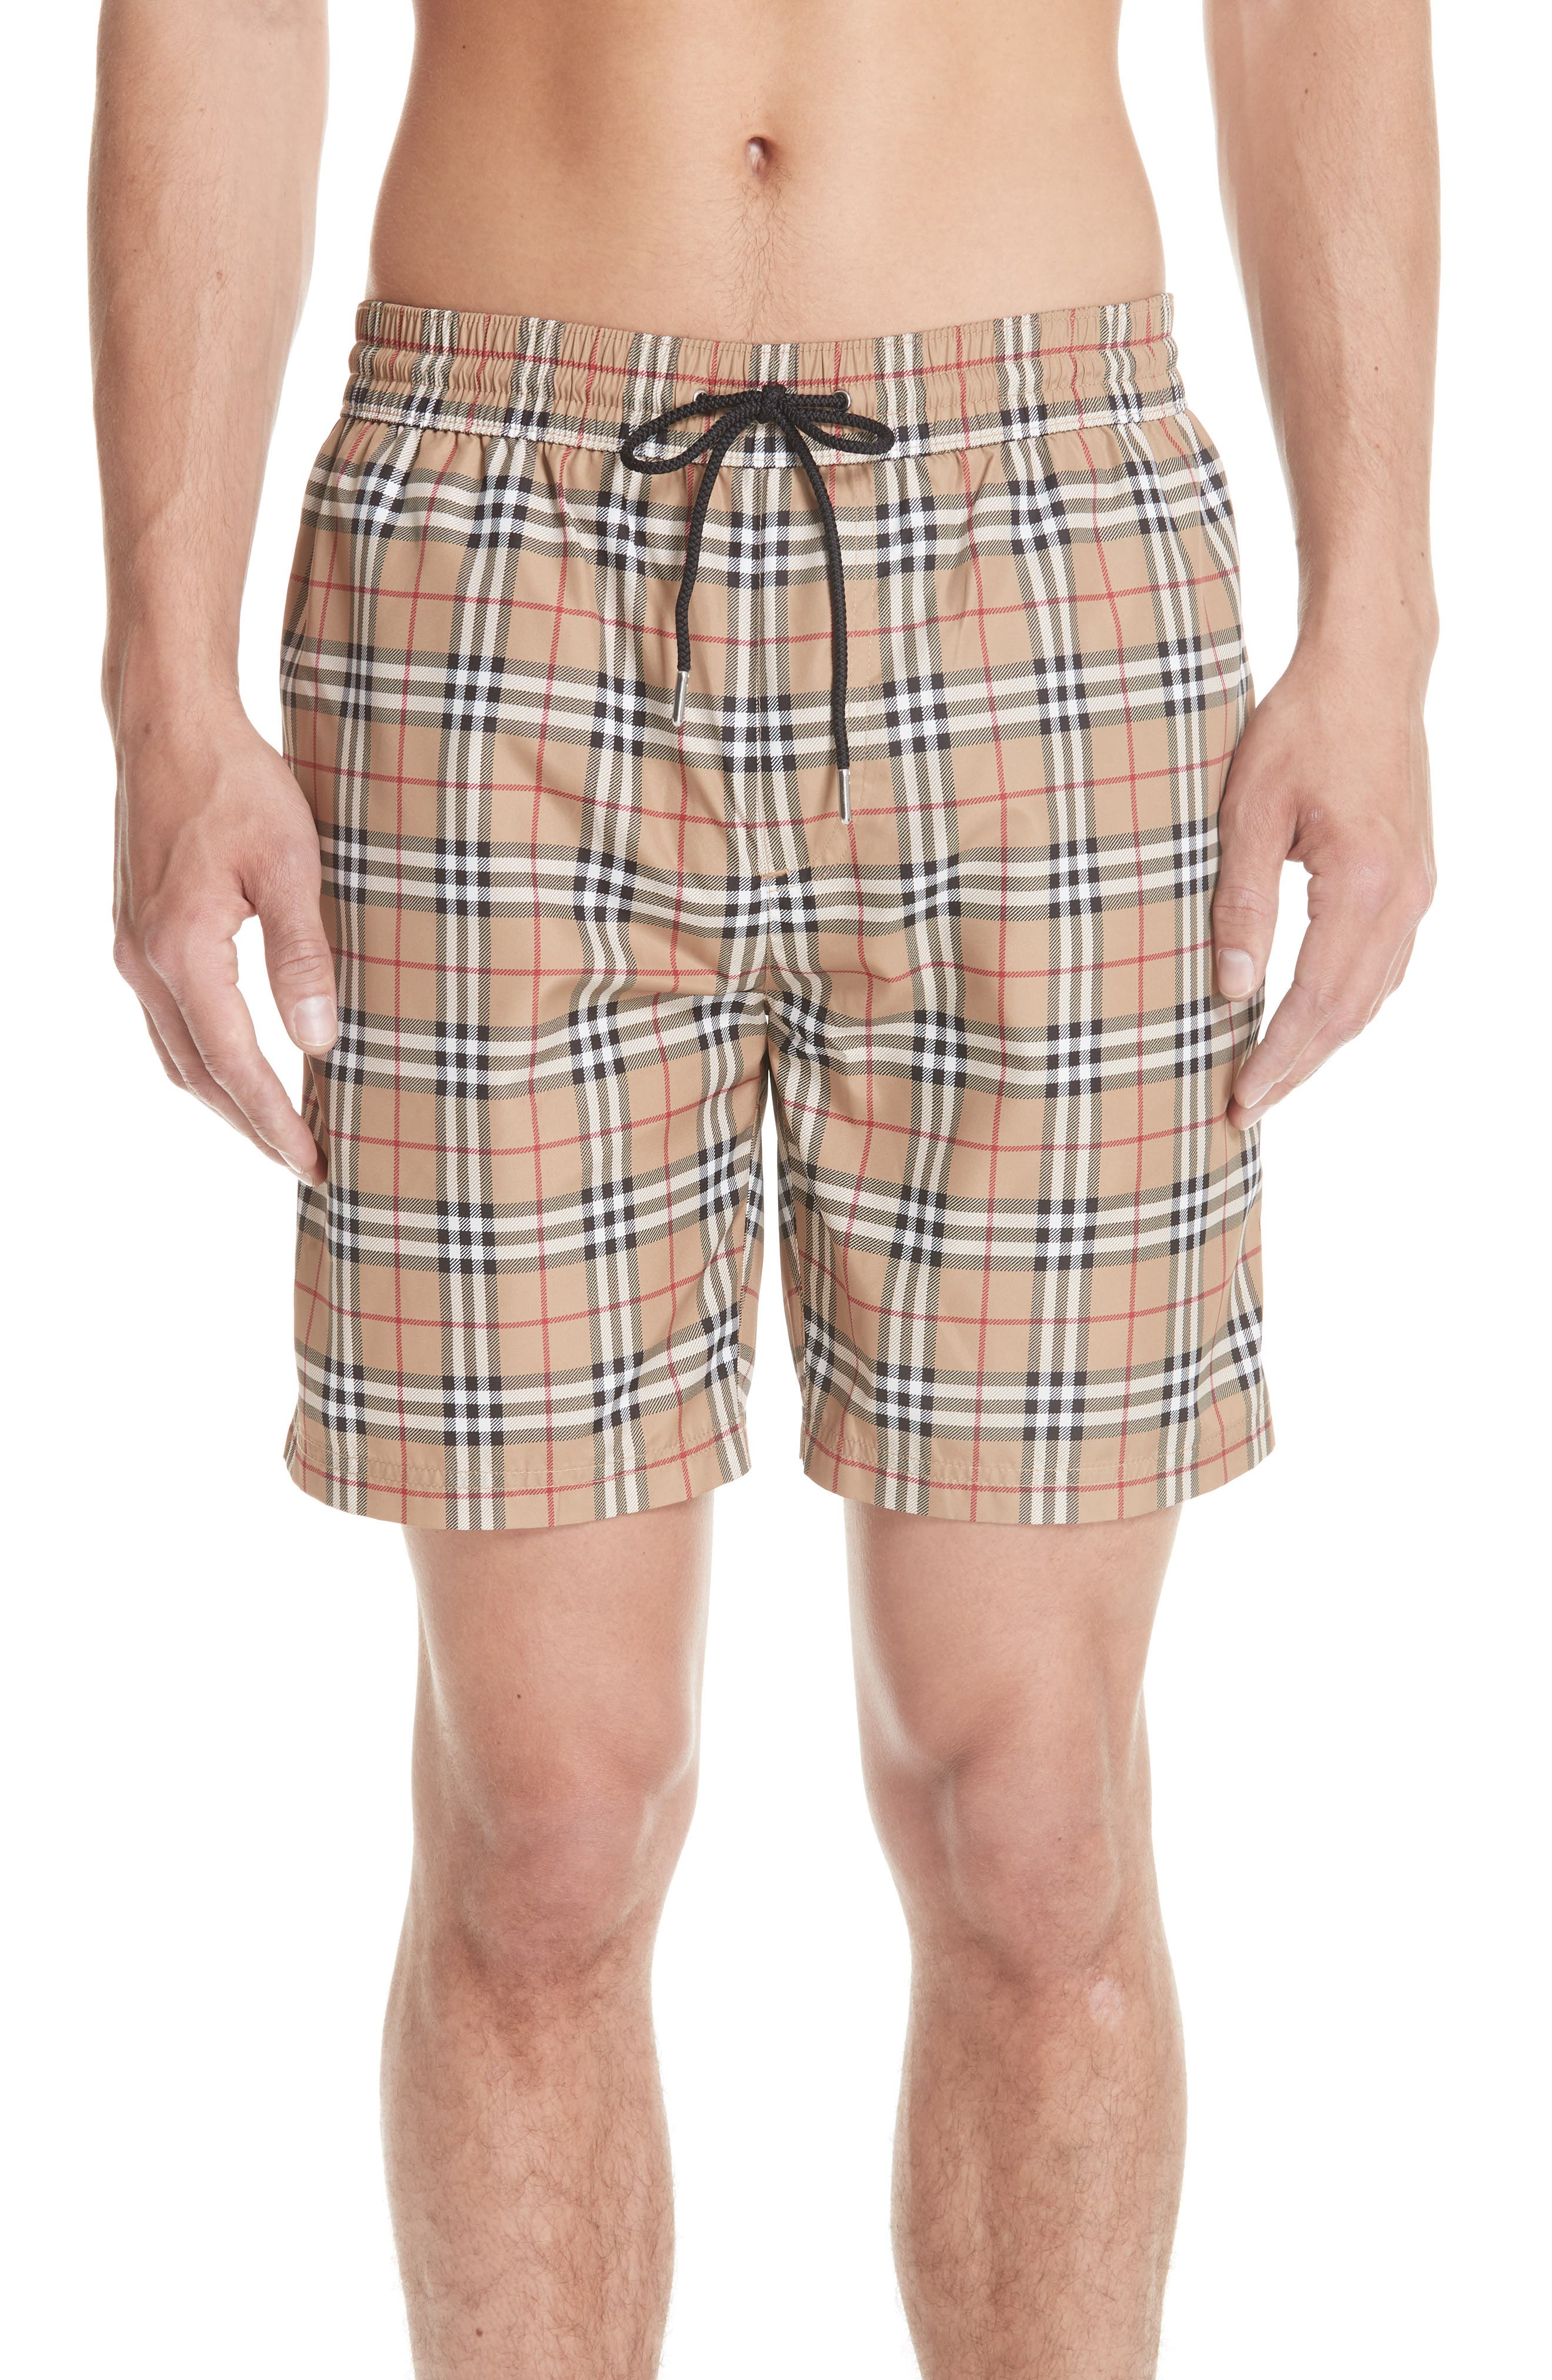 Guides New Check Swim Trunks,                         Main,                         color, CAMEL